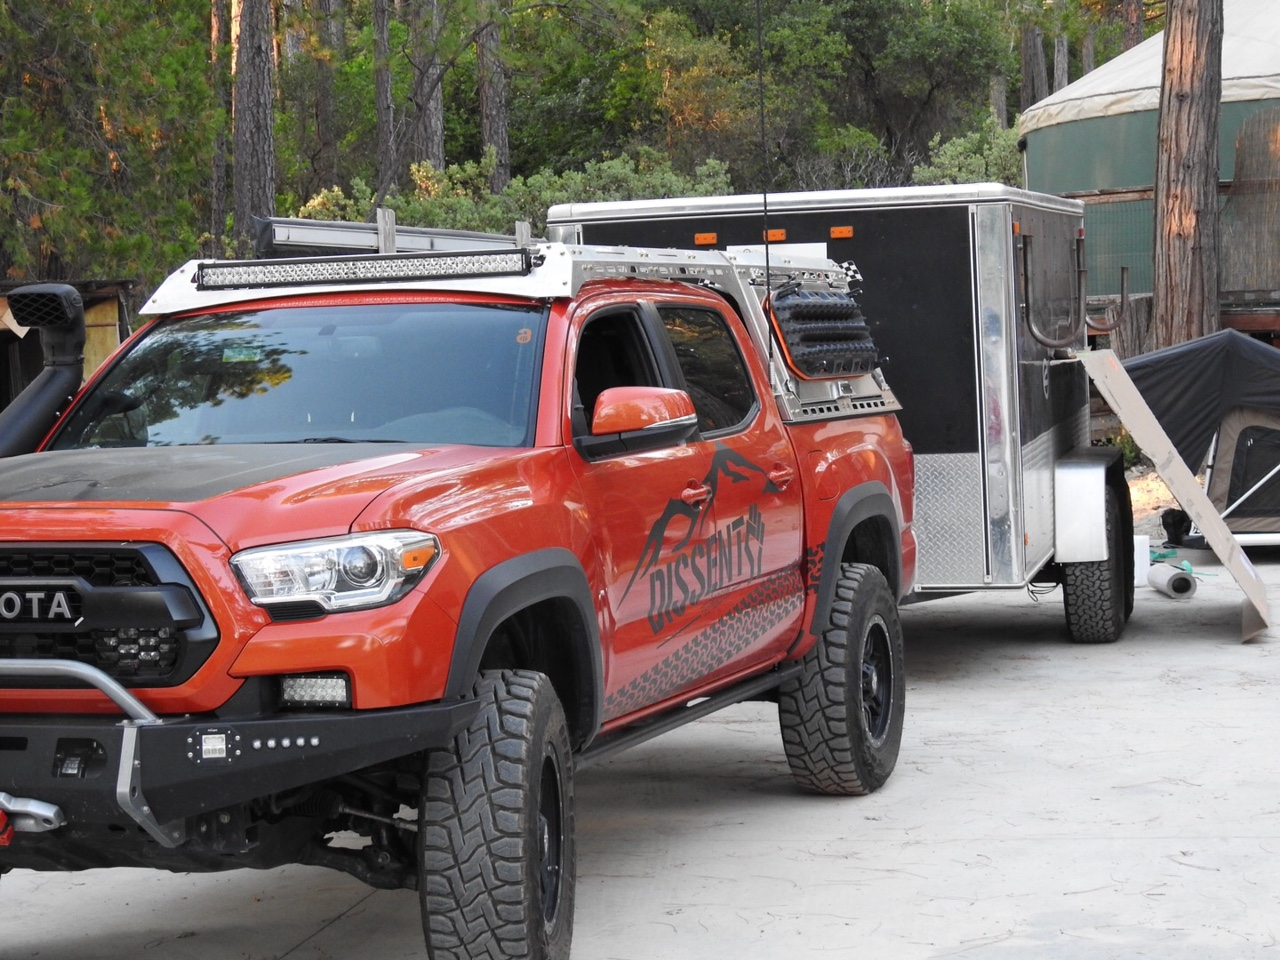 Dissent offroad 2016 Tacoma trd build  | Page 13